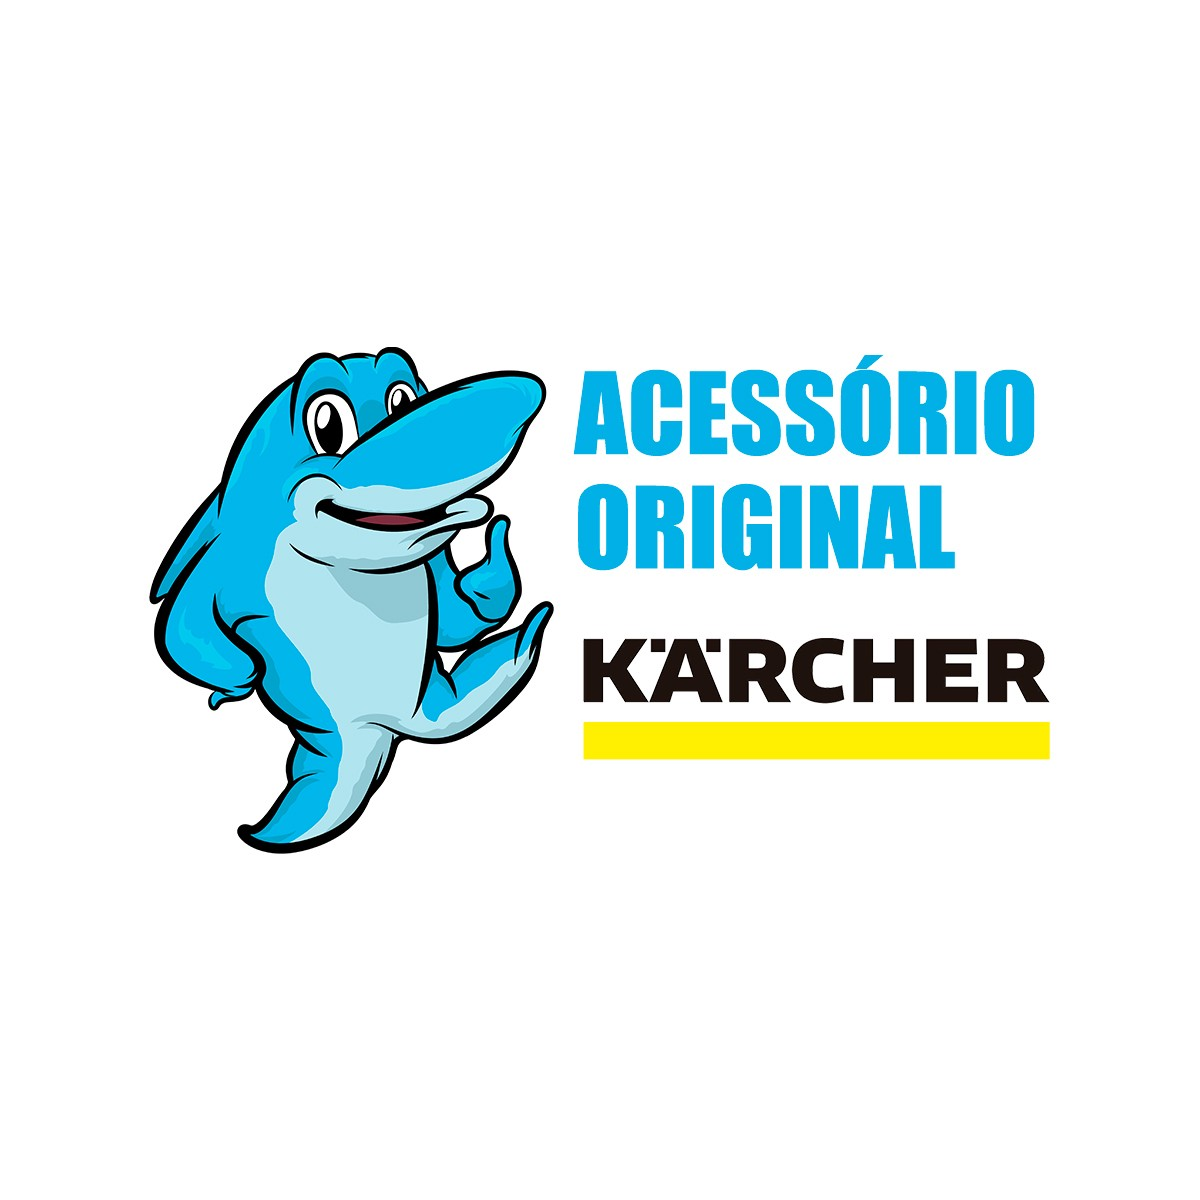 Mangueira para Lavadora Karcher K2500 Black, K3 Premium, K3.98 (Nova), K3.30 (Nova), K4 Power Plus, K430 Power Silent, K5 Power Plus 6,5mts Original